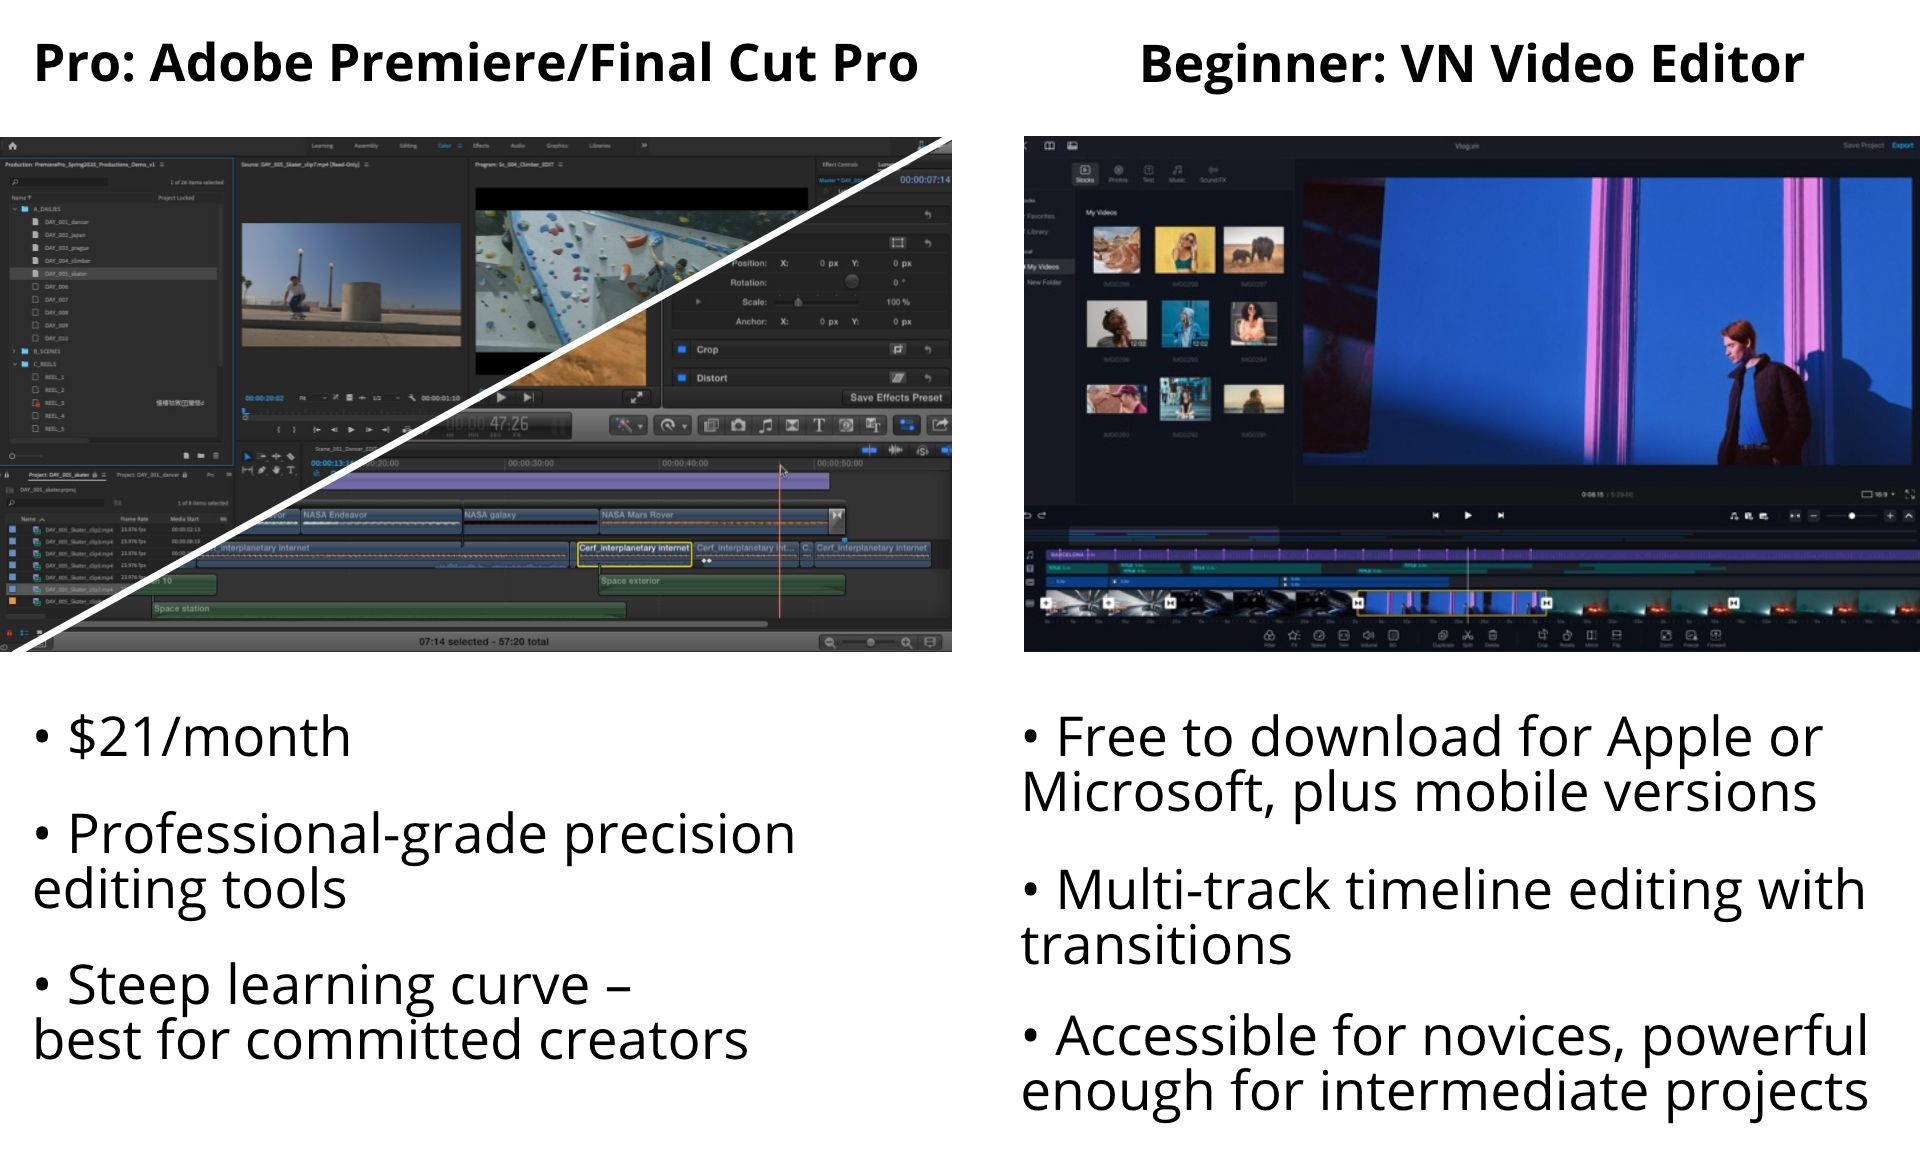 A graphic detailing the features of Adobe Premiere, Final Cut Pro, and VN Video Editor.